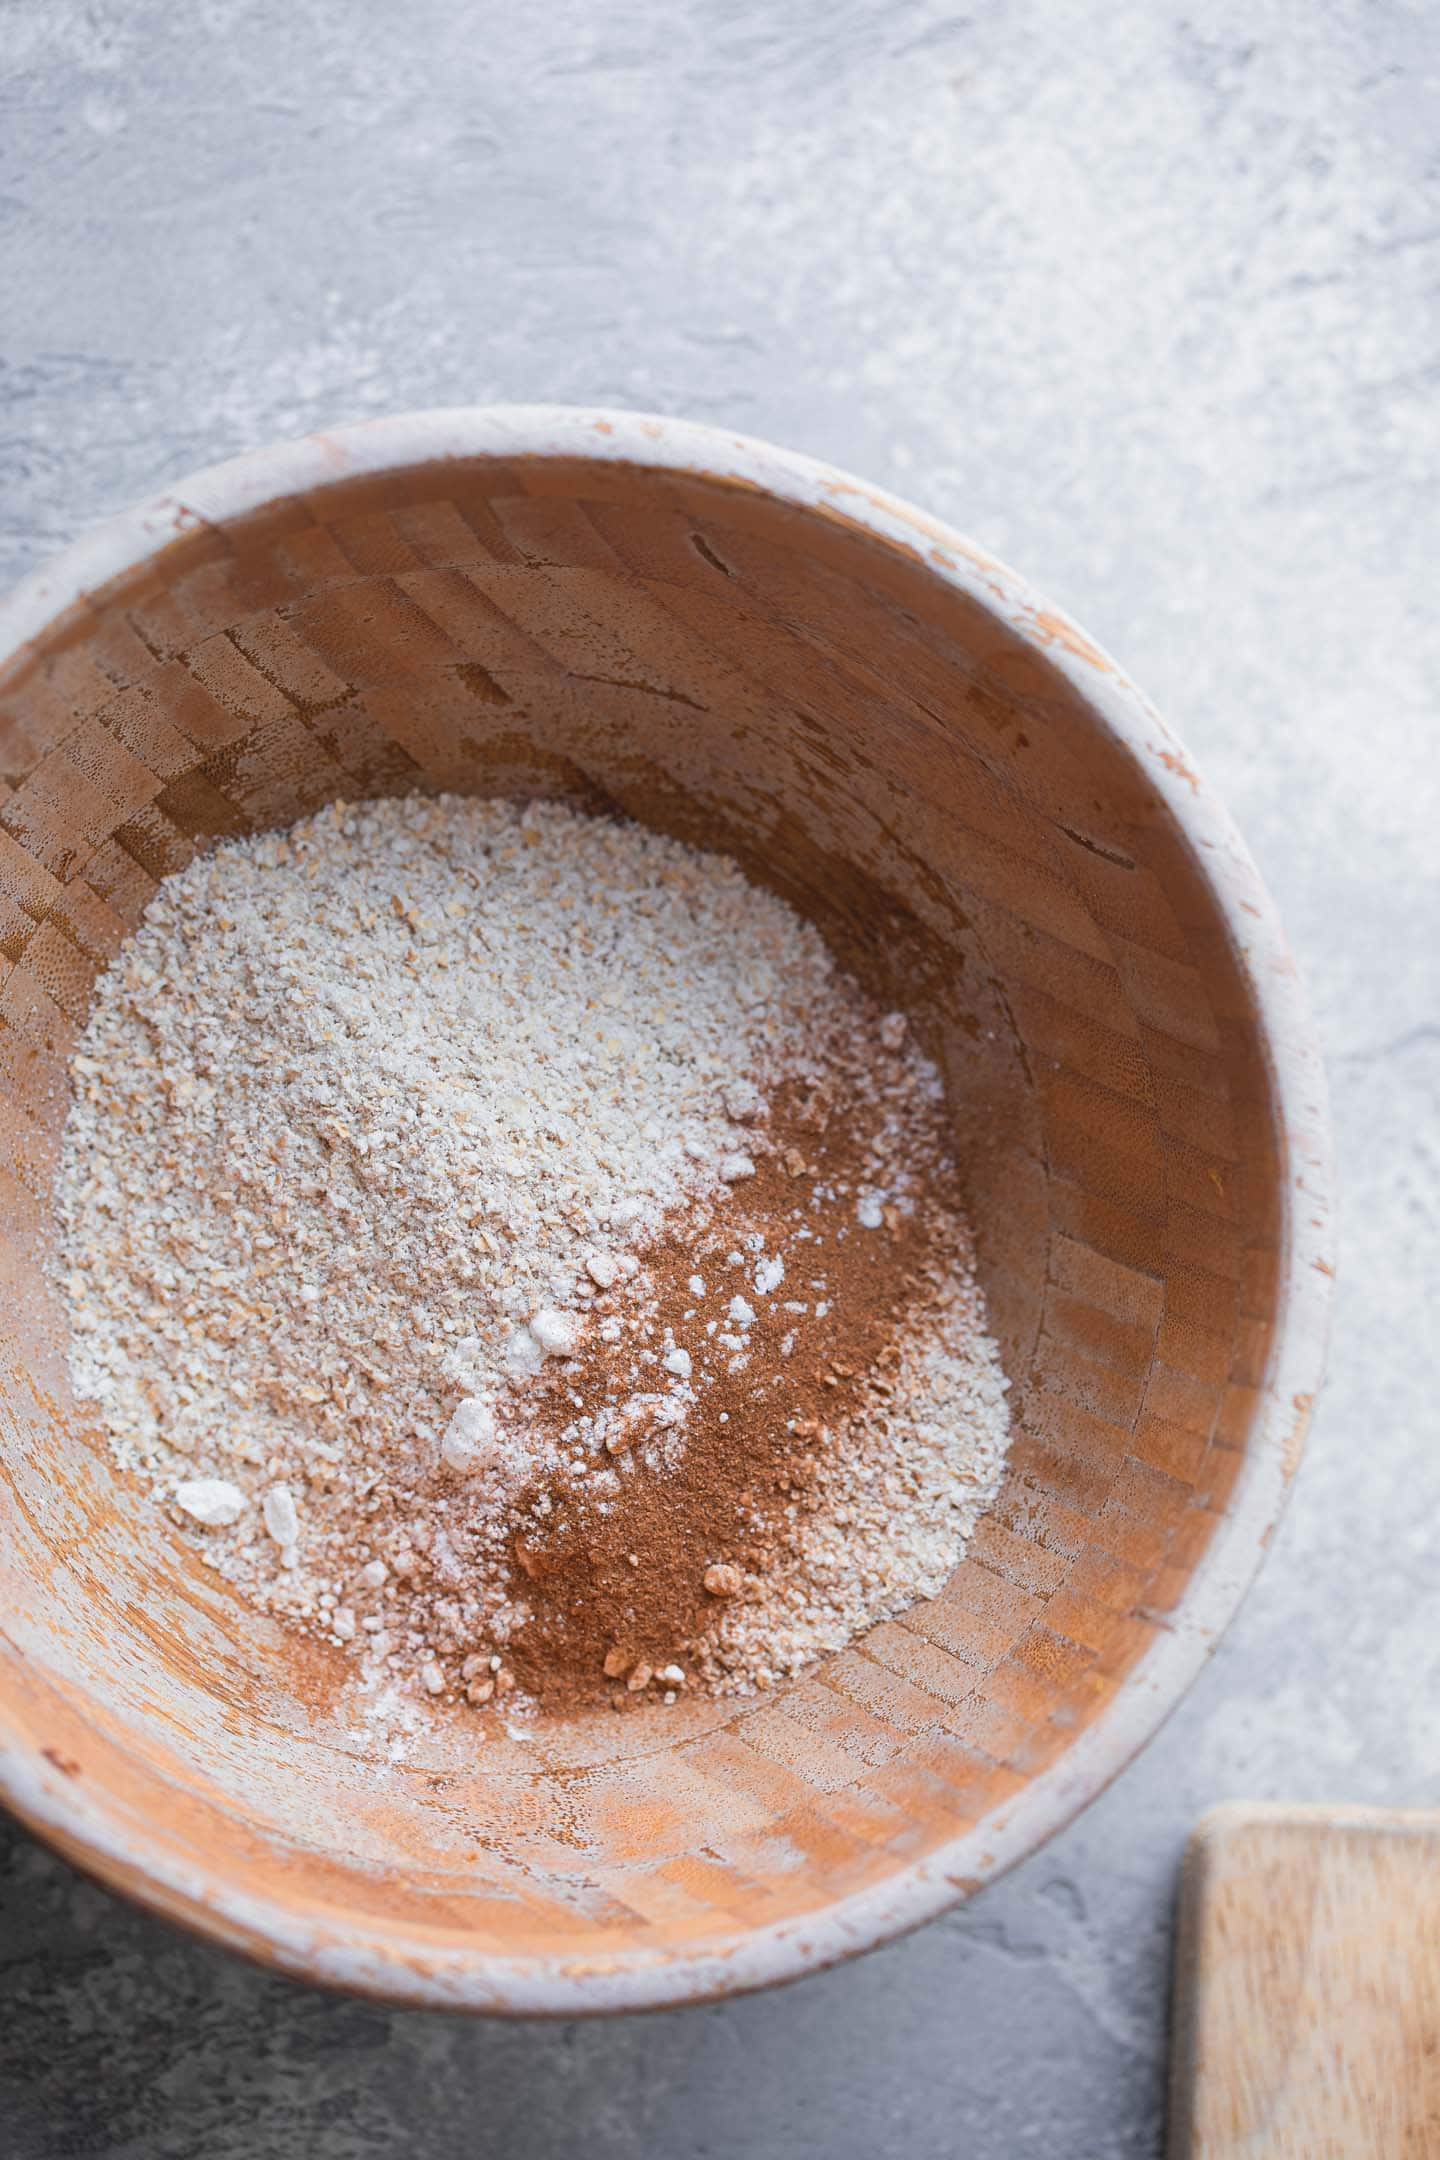 Dry ingredients for pancakes in a mixing bowl